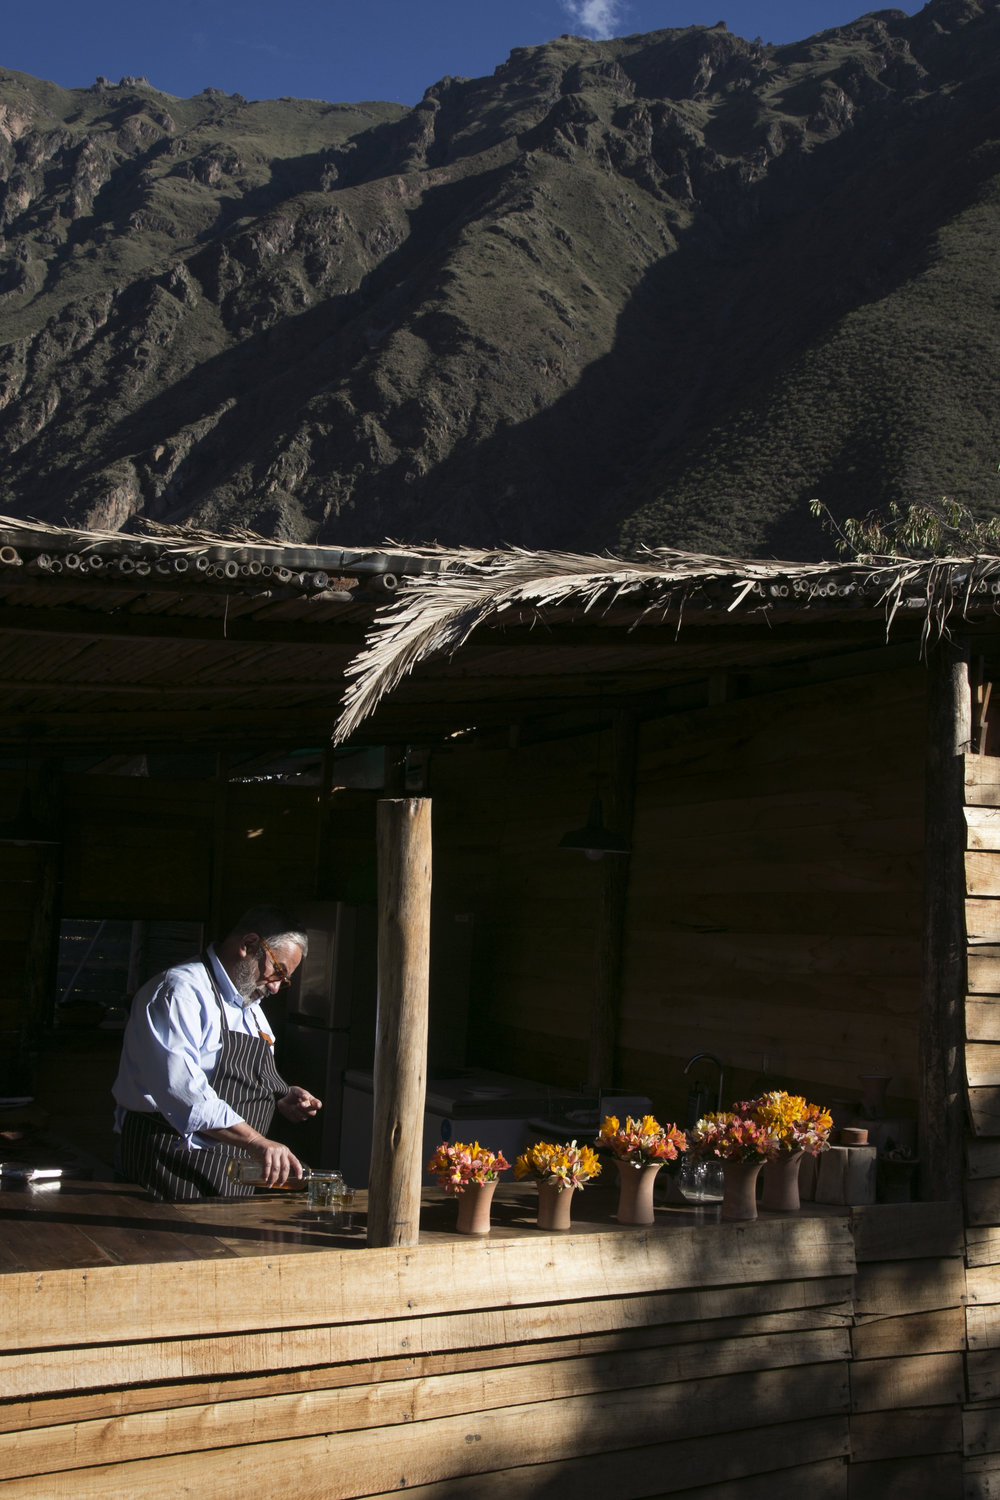 Gabriel Velasquez serves a pachamanca lunch in the organic garden at El Aubergue in Ollantaytambo, Peru.